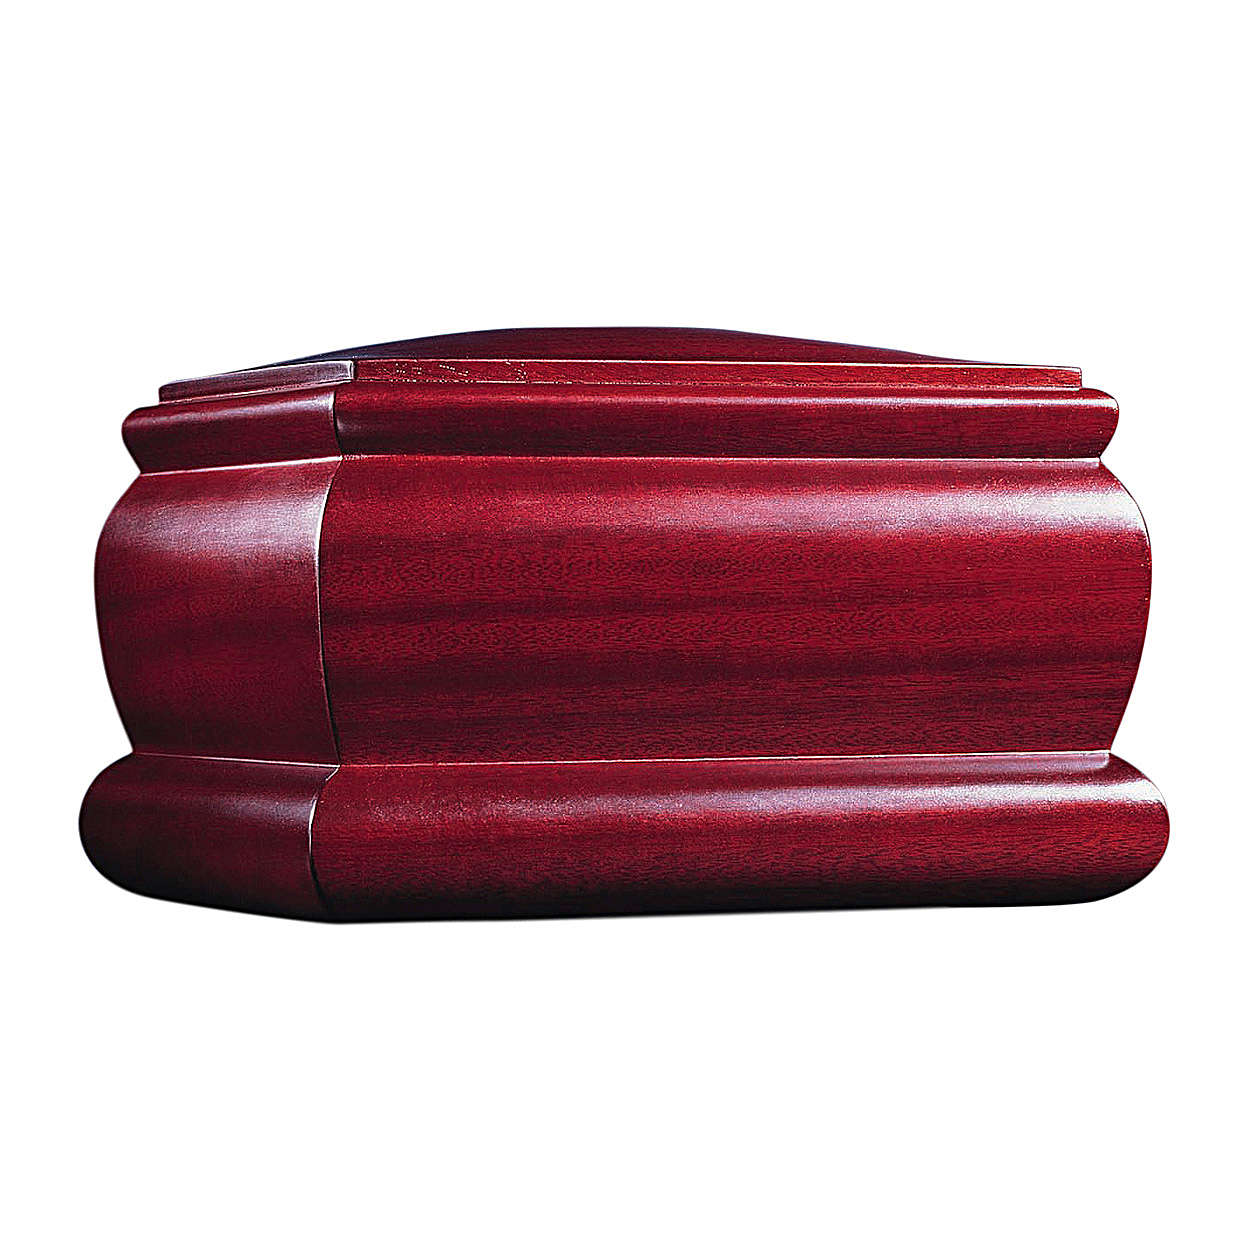 Casket funeral urn in mahogany 3